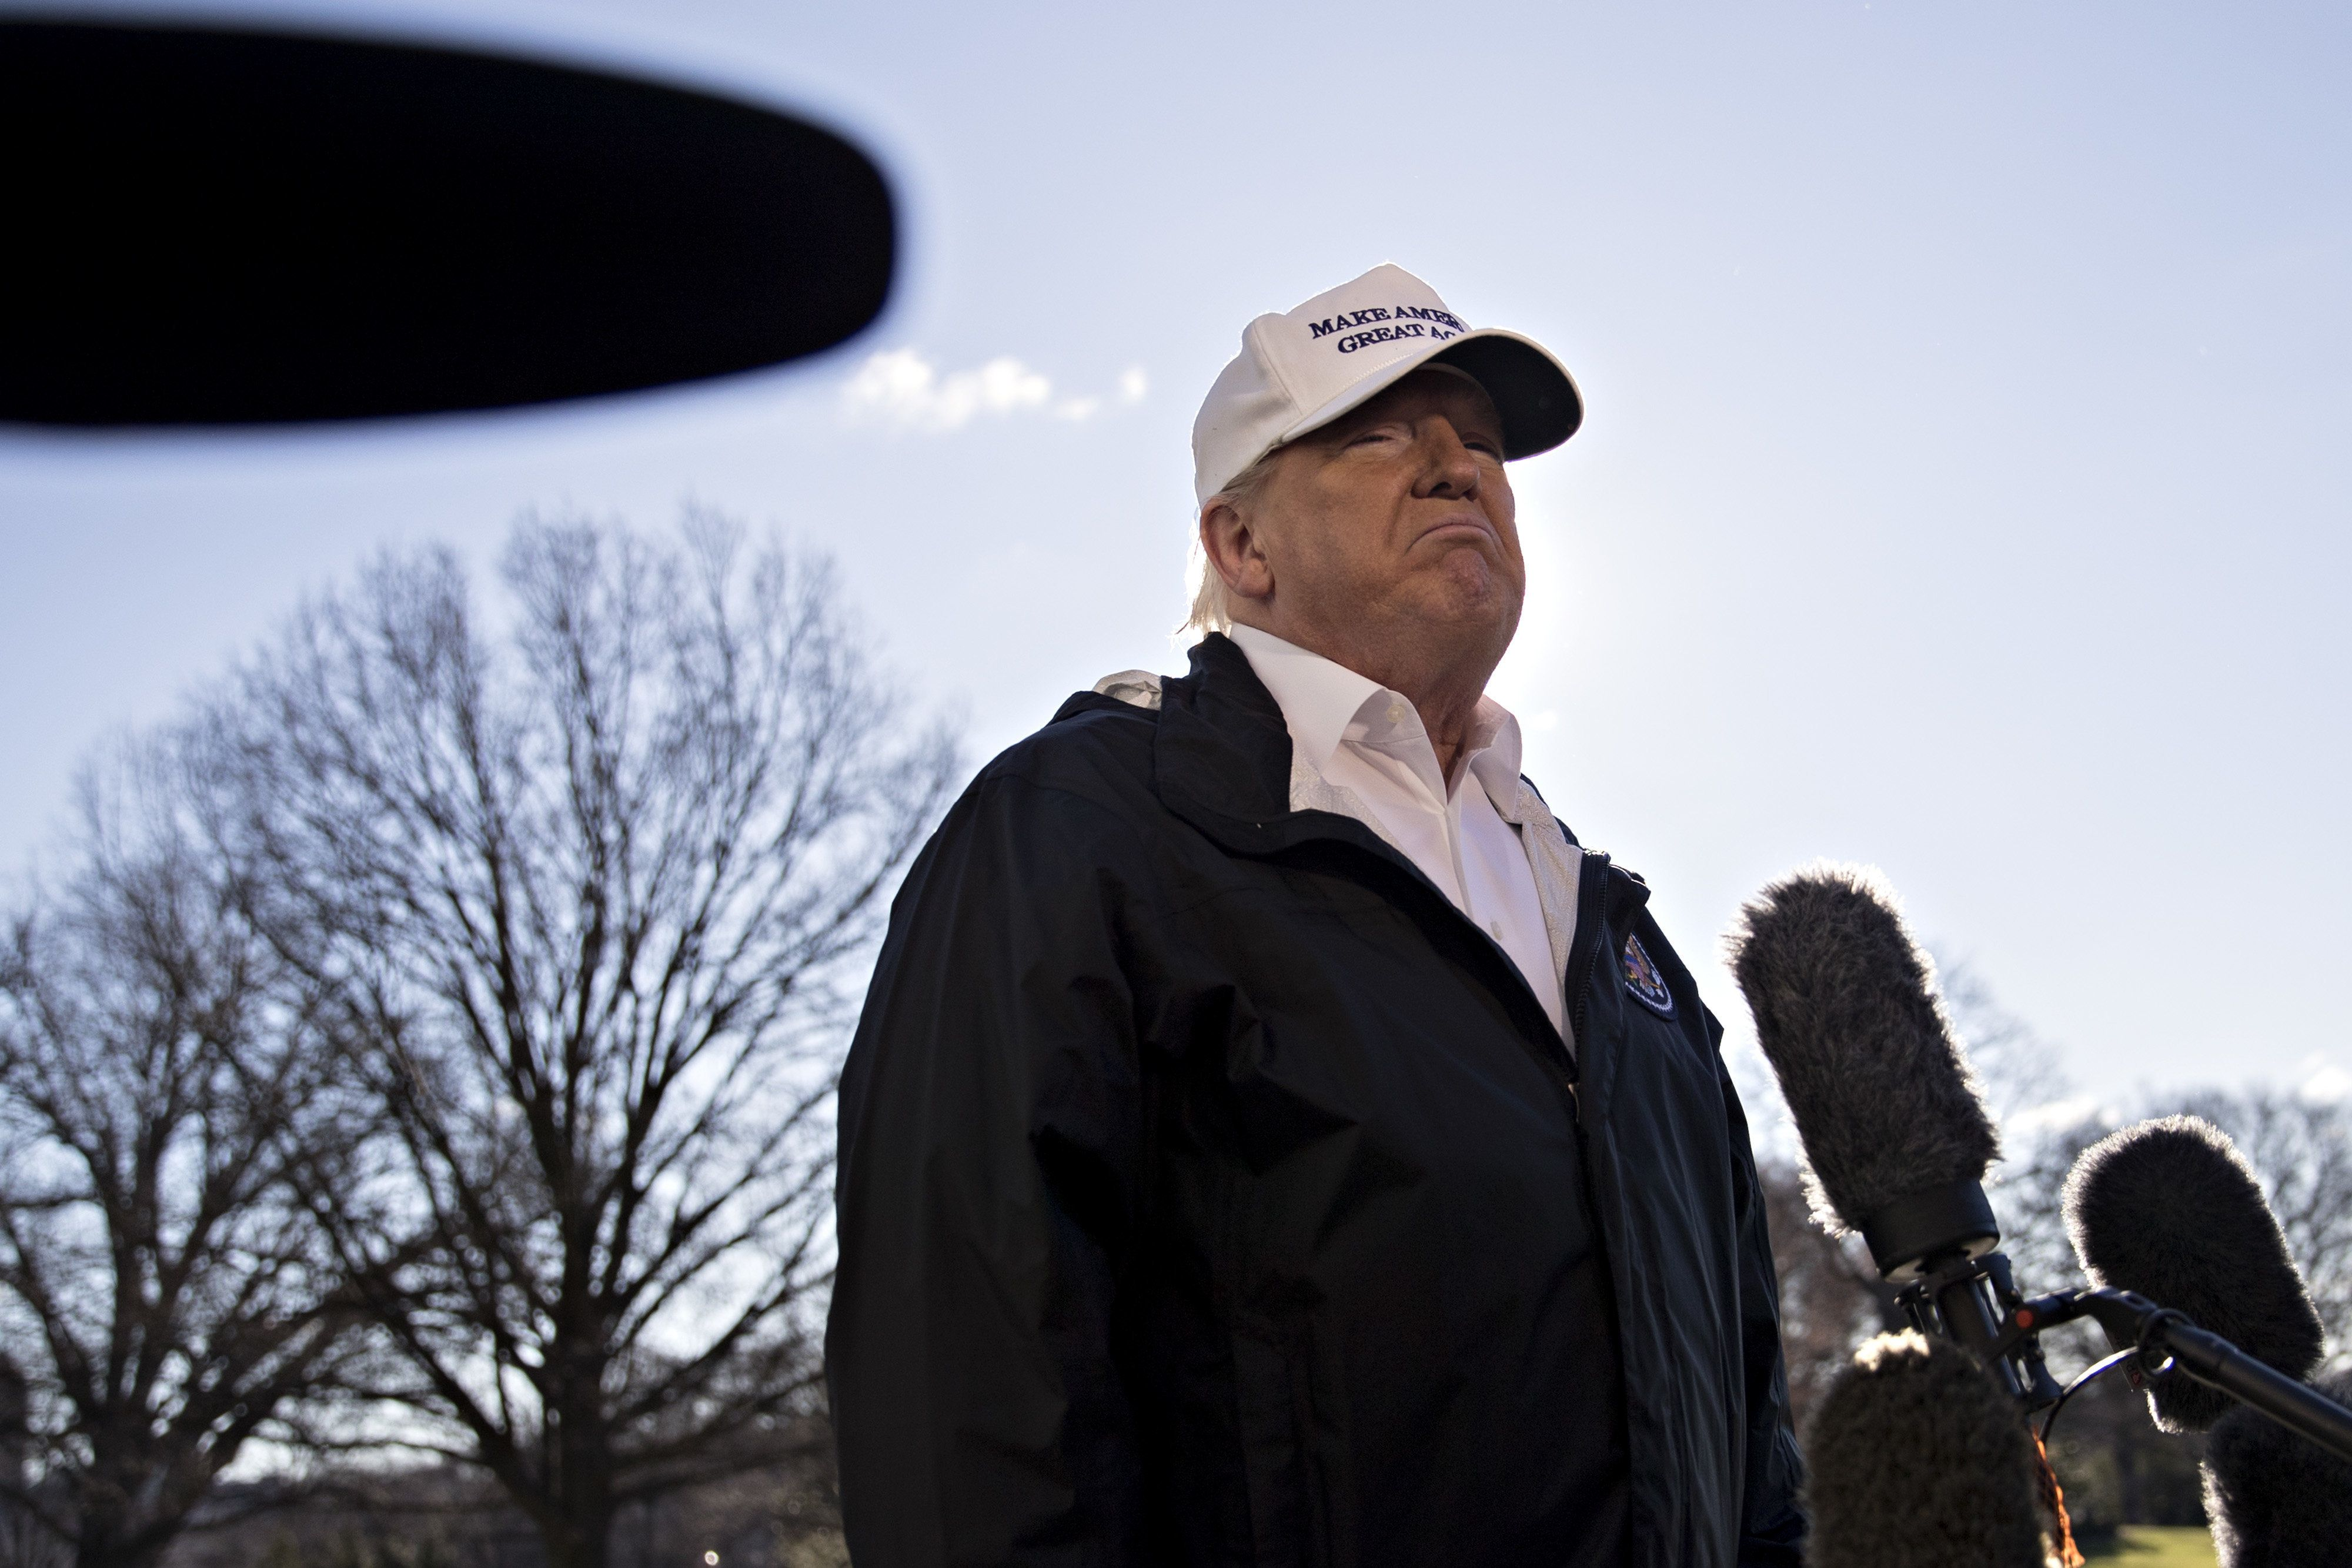 U.S. President Donald Trump pauses while speaking to members of the media on the South Lawn of the White House before boarding Marine One in Washington, D.C., U.S., on Thursday, Jan. 10, 2019. Trump heads to Texas to rally support for building a border wall a day after walking out of talks with congressional leaders on ending a partial government shutdown. The shutdown entered its 20th day on Thursday as its impact is more widely felt. Photographer: Andrew Harrer/Bloomberg via Getty Images